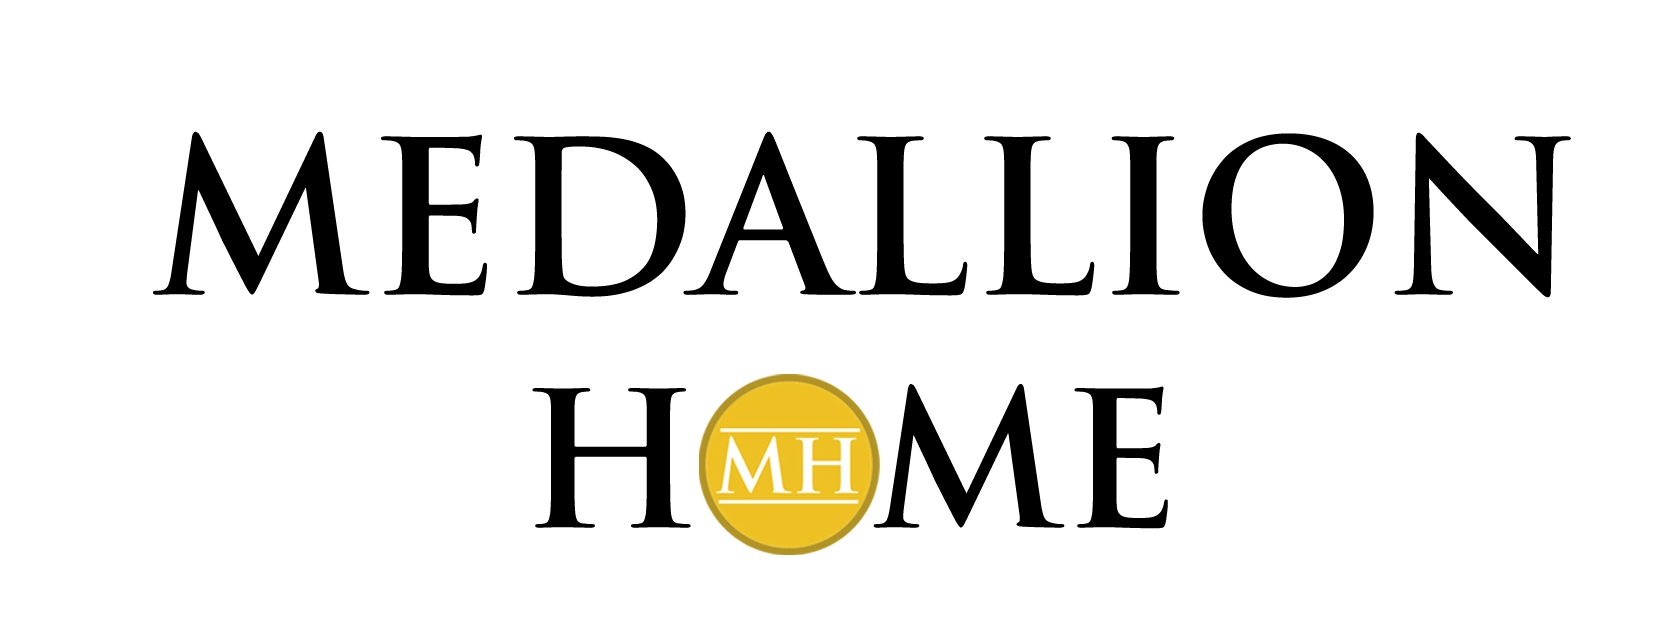 Medallion Home logo[2].jpg